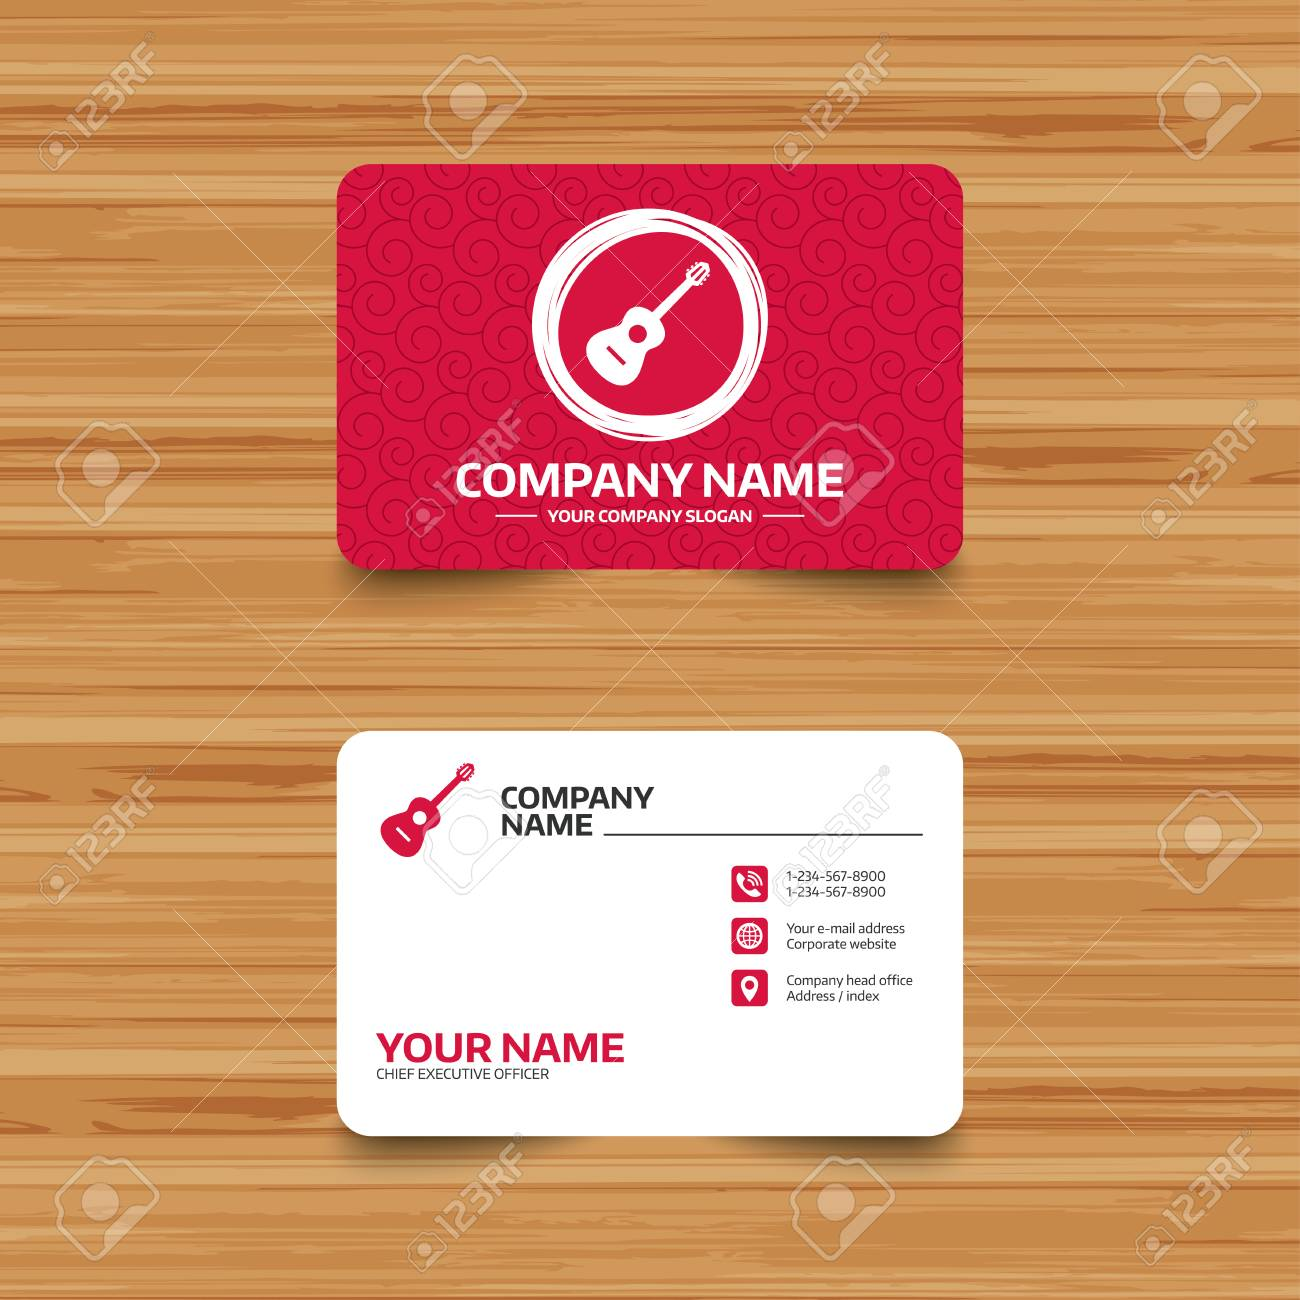 Business card template with texture acoustic guitar sign icon business card template with texture acoustic guitar sign icon music symbol phone reheart Images